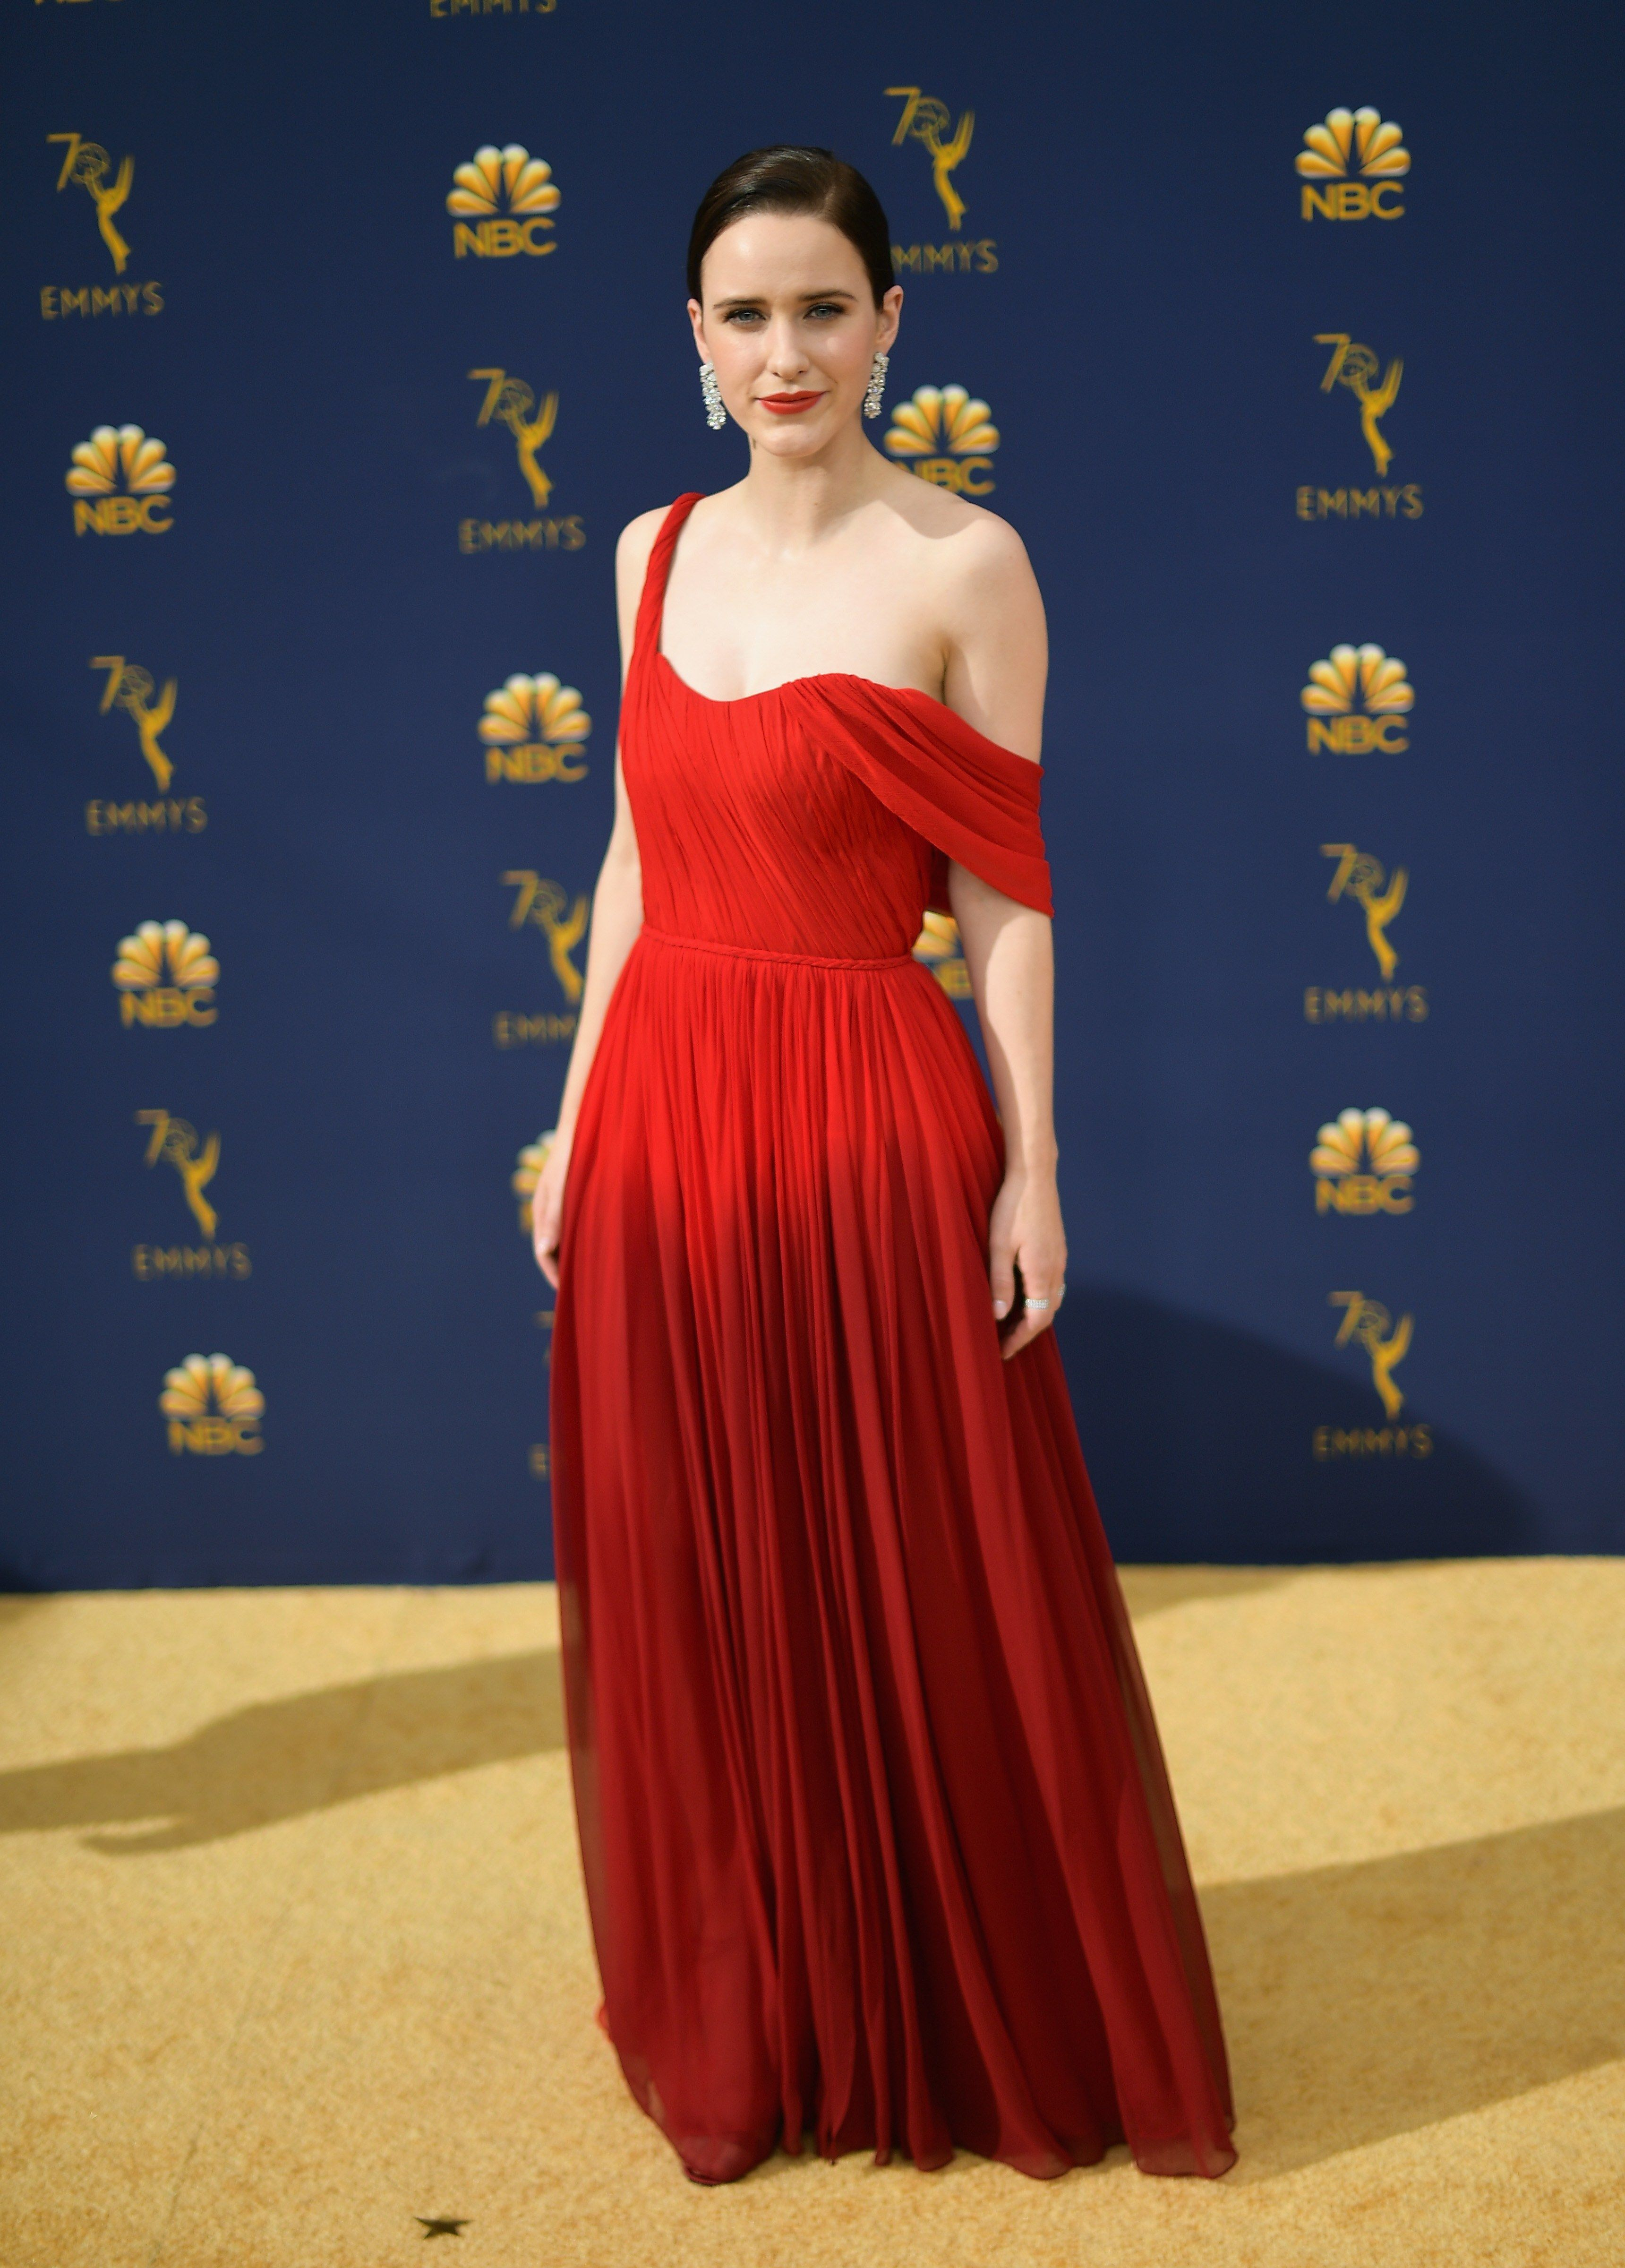 db8679b7353 Every Single Look From the 2018 Emmy Awards Red Carpet in 2019 ...